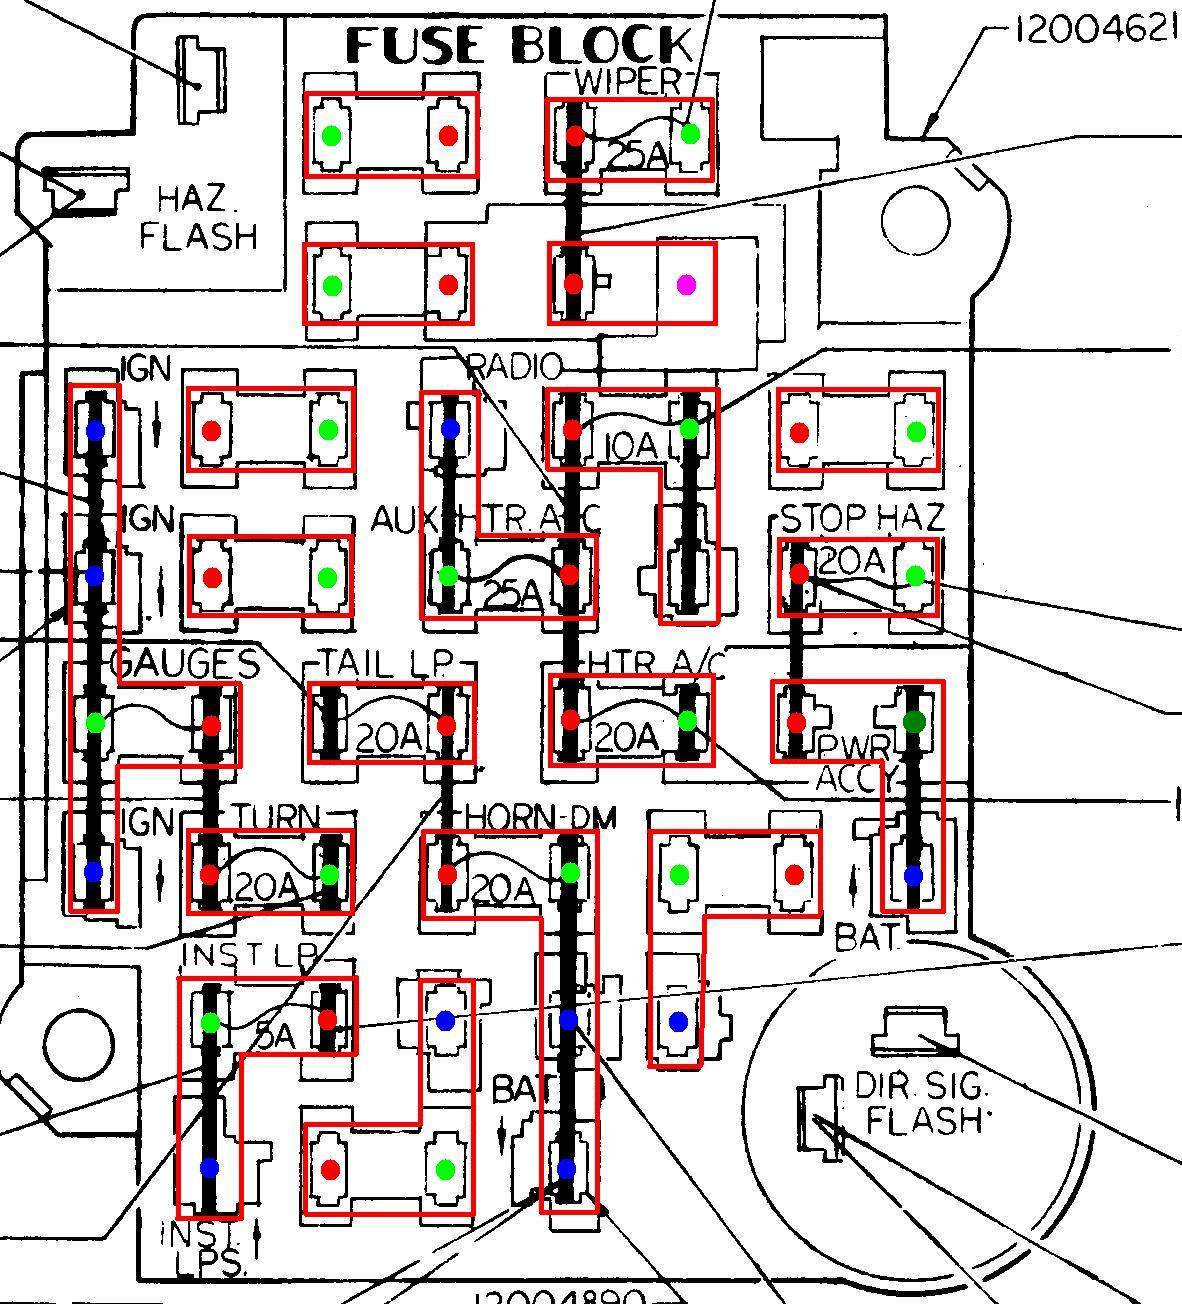 hight resolution of 1985 chevy pickup fuse diagram wiring diagram load 1985 chevy pickup fuse diagram